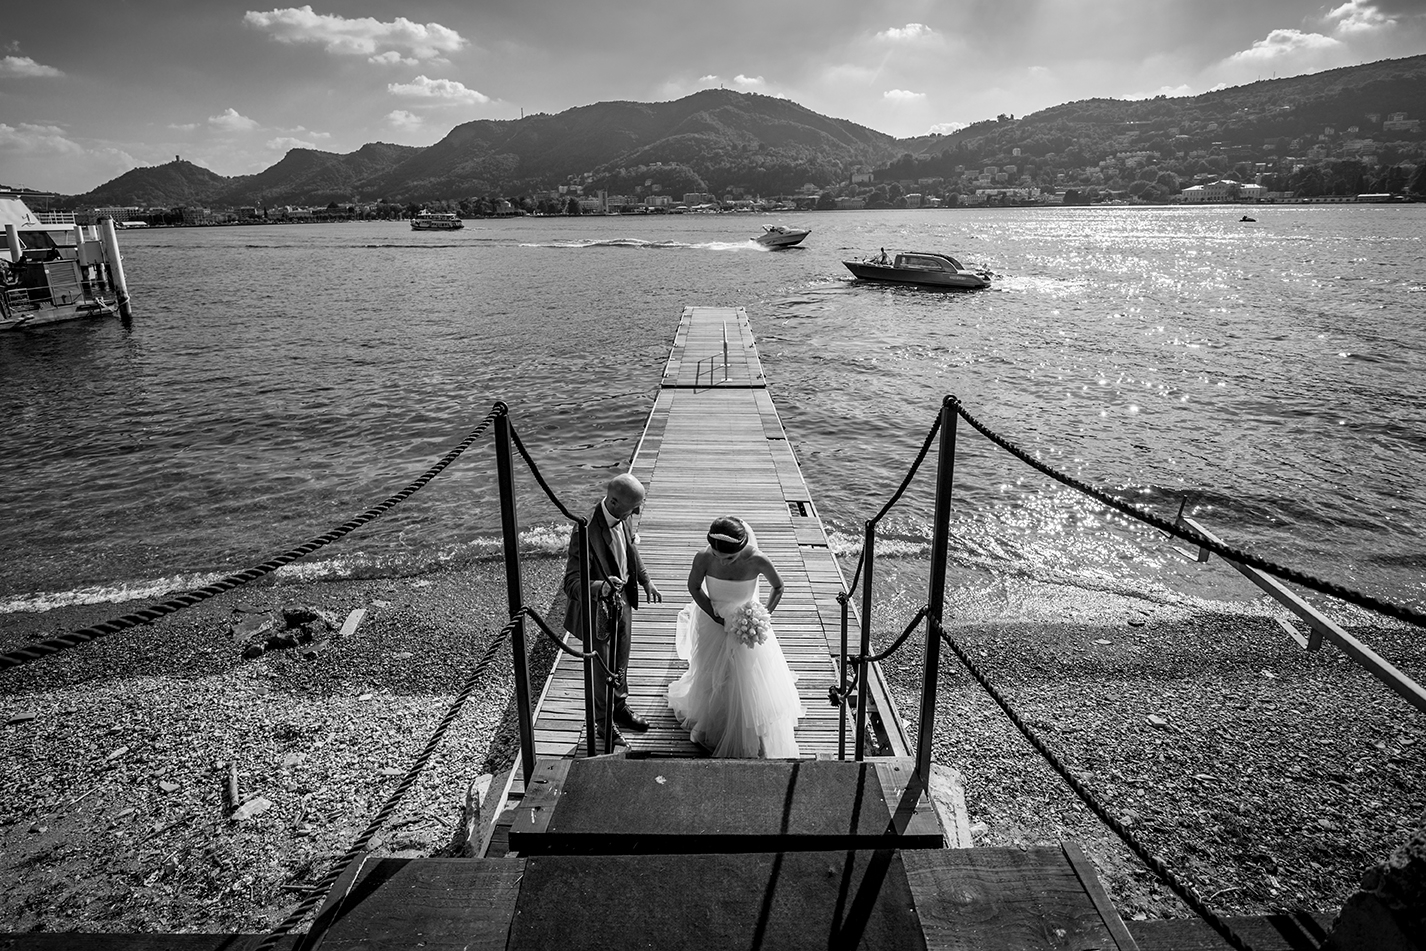 Beautiful ceremony on the shores of Lake Como